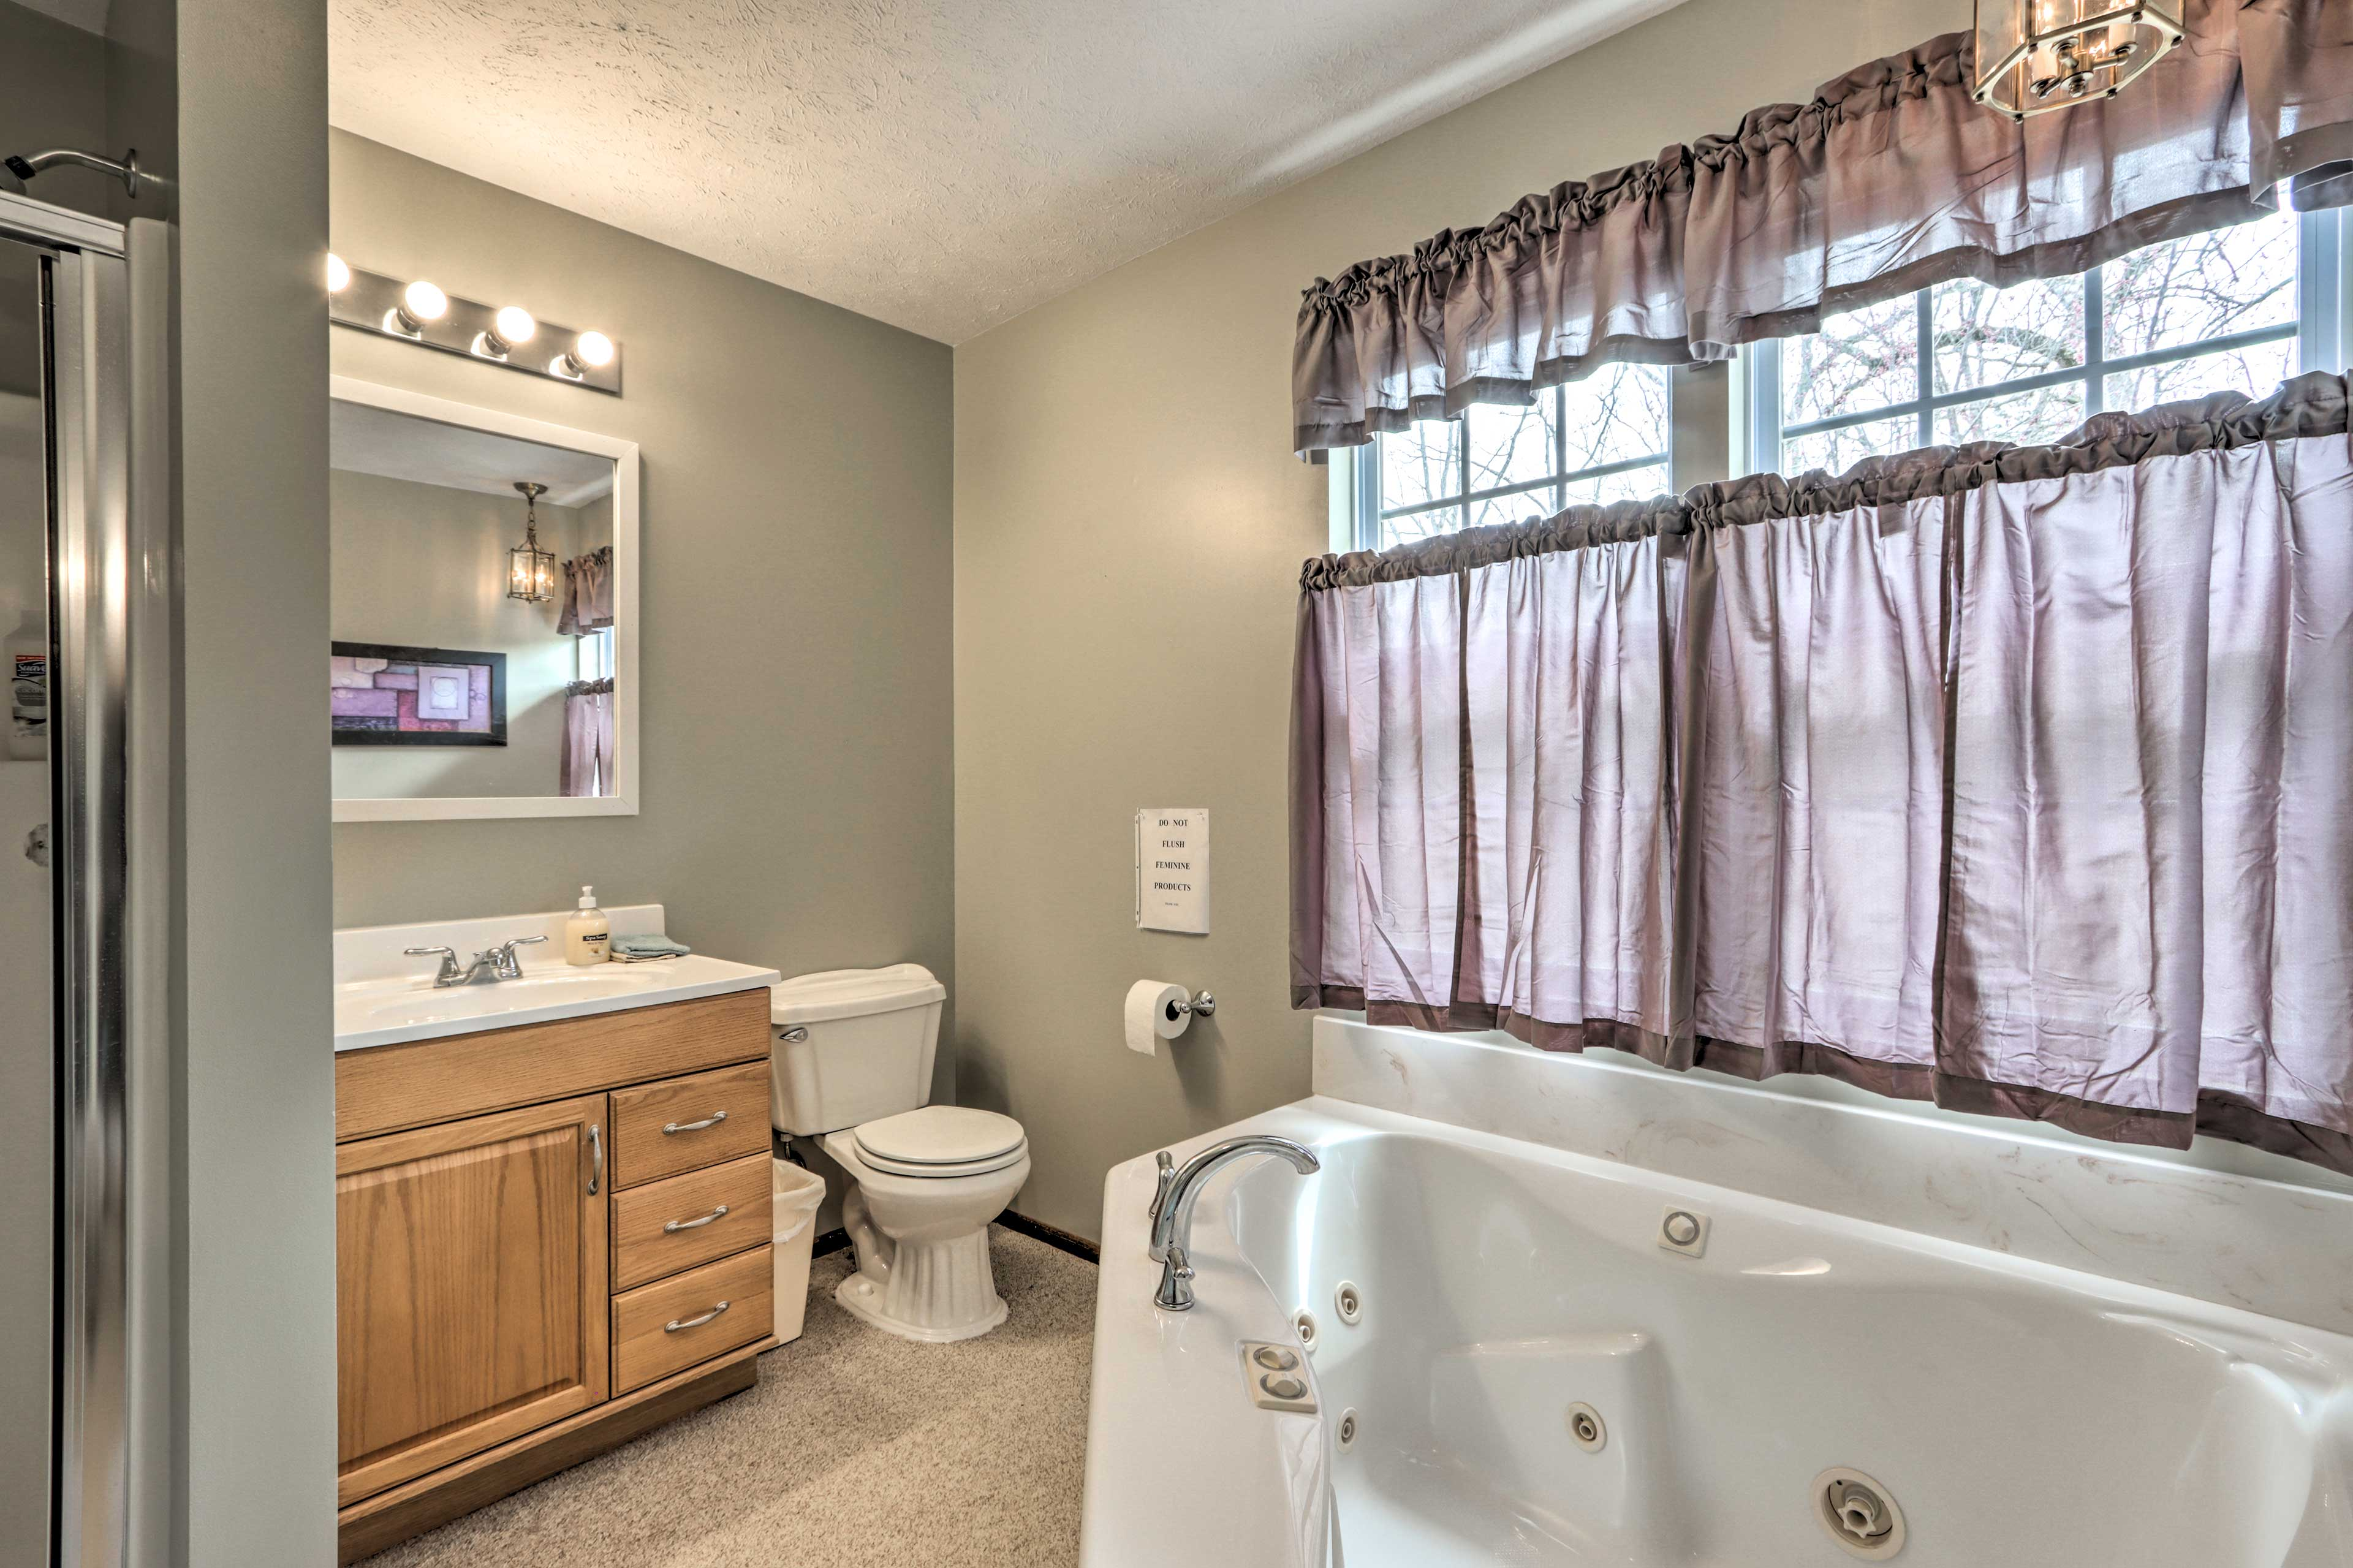 The en-suite bathroom boasts a jetted tub.